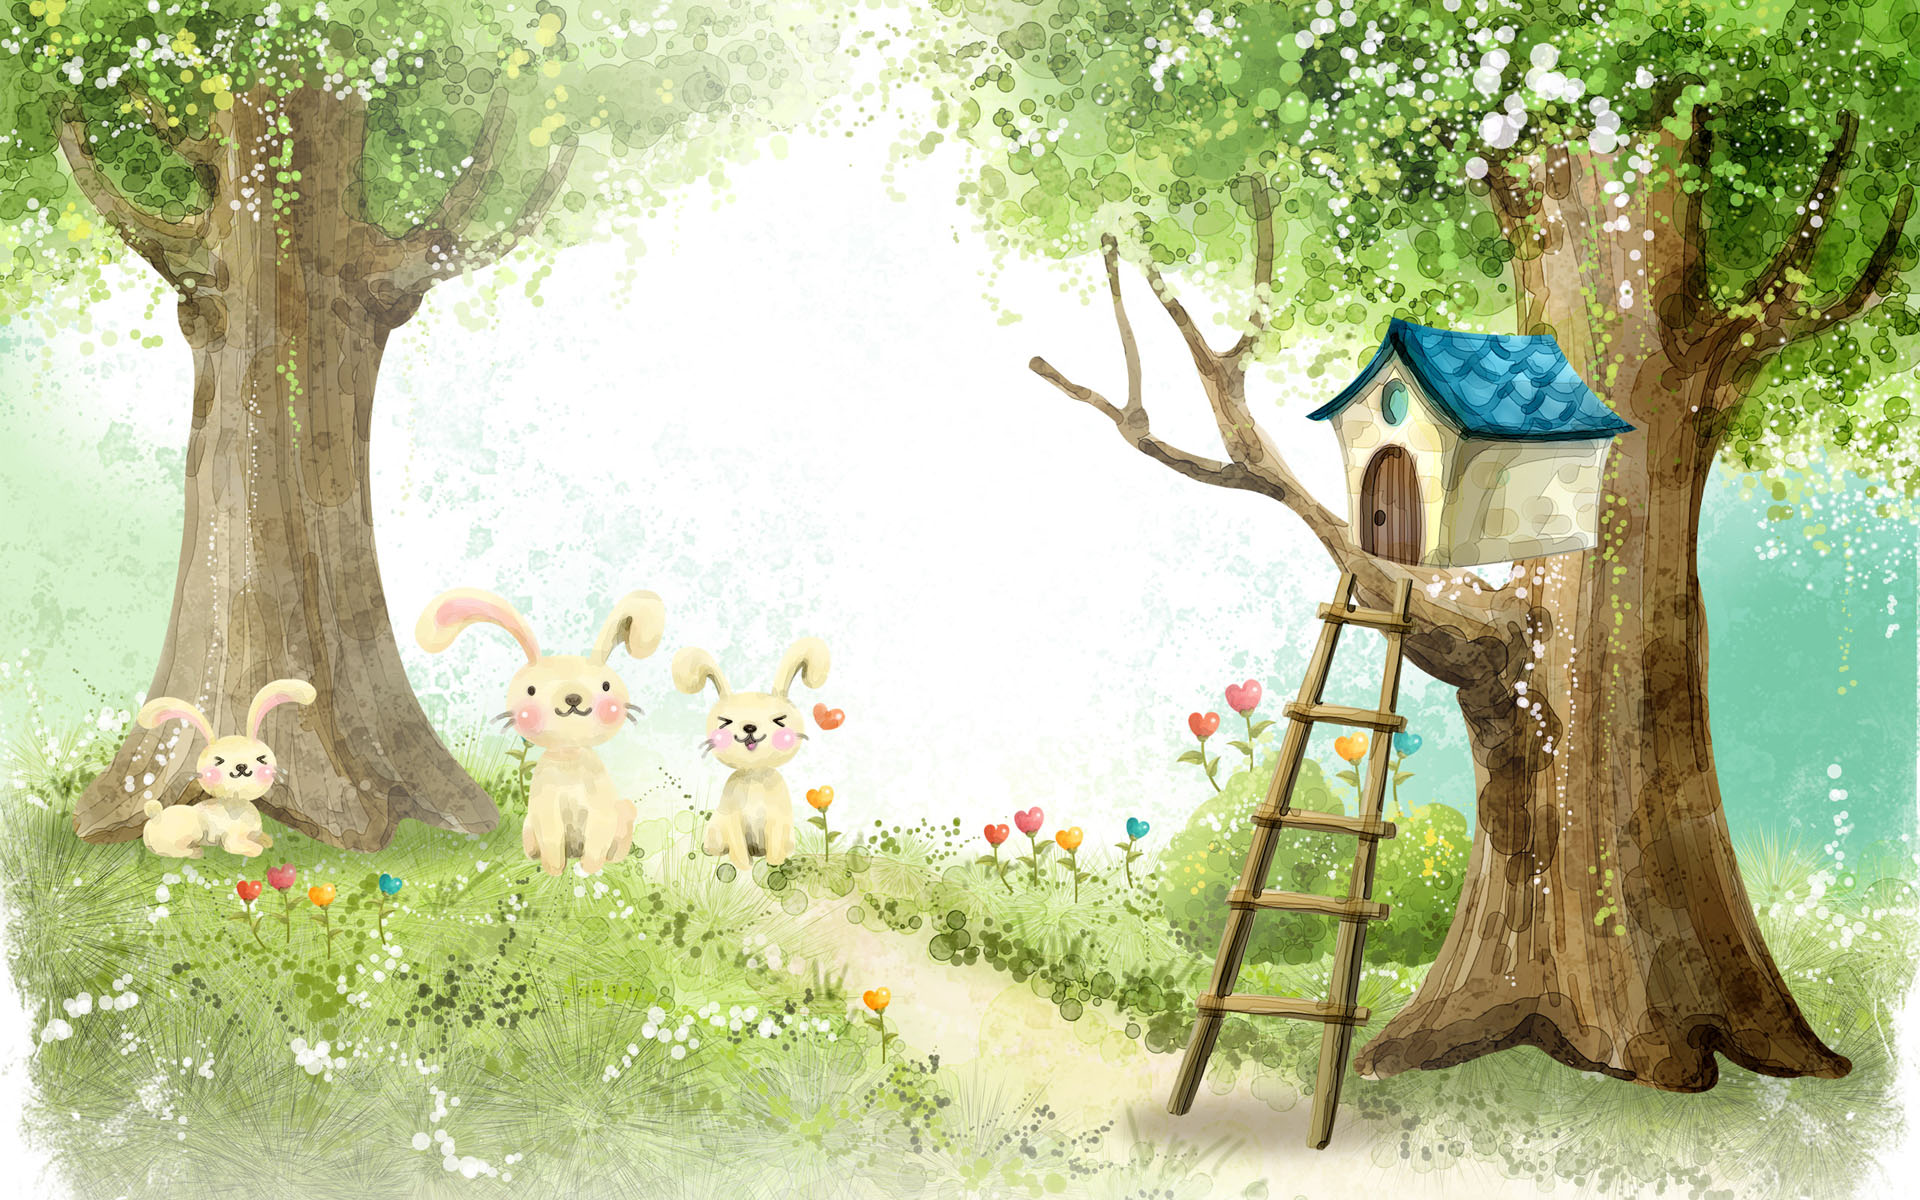 Grass Rabbits Trees Bird House wallpapers | Grass Rabbits ...